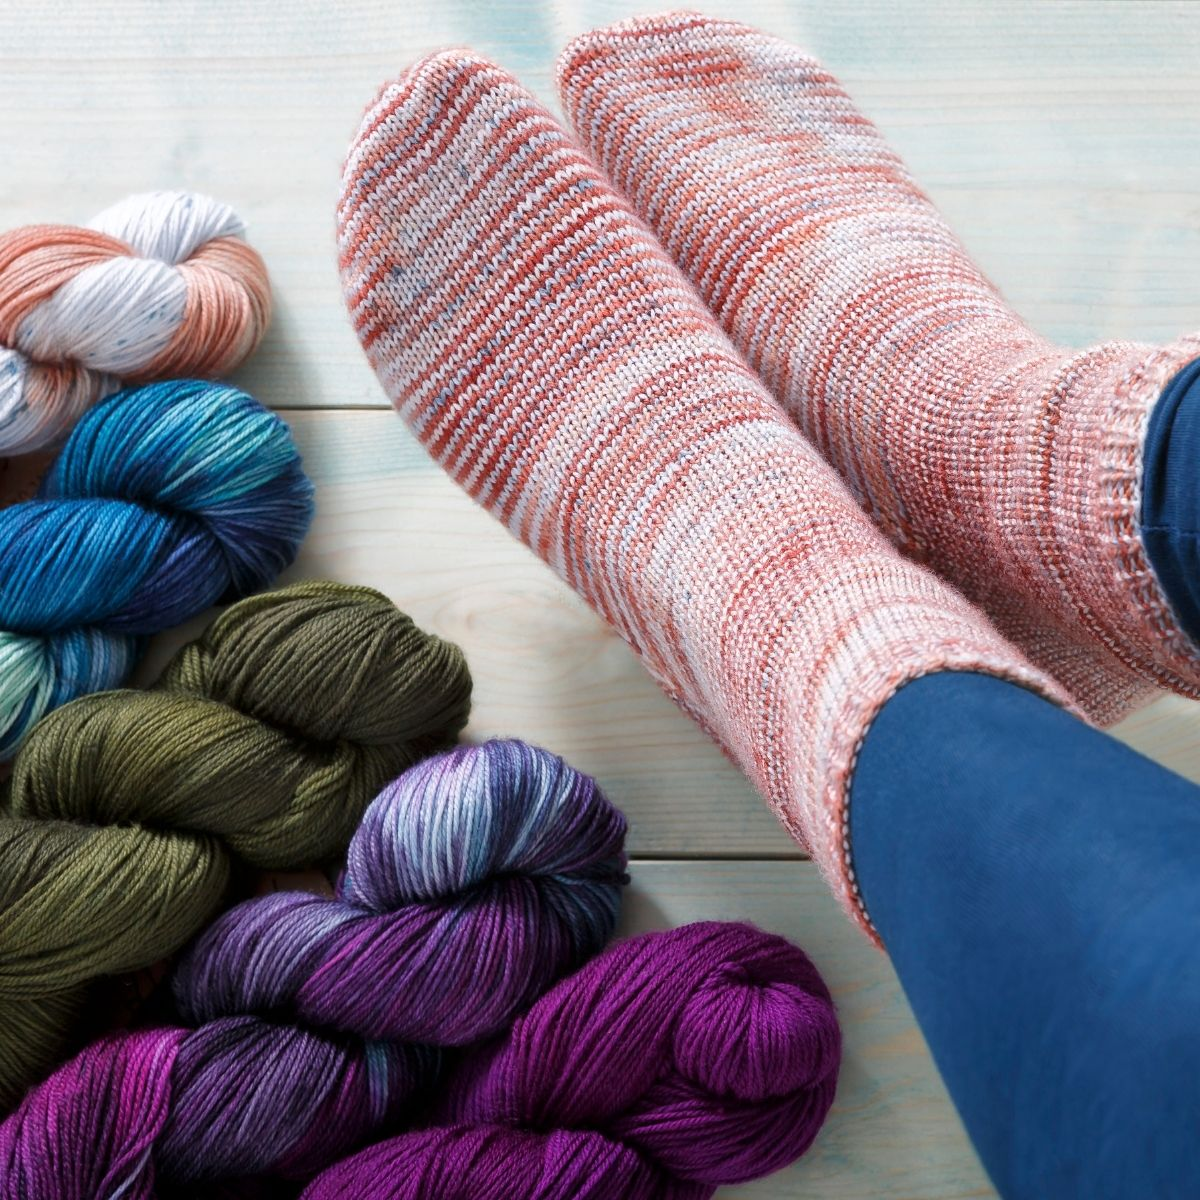 A woman's feet  are pictured, wearing hand knit socks in Manos del Uruguay Alegria. The colorway of the socks is Colorado river, additional skeins of yarn are shown.